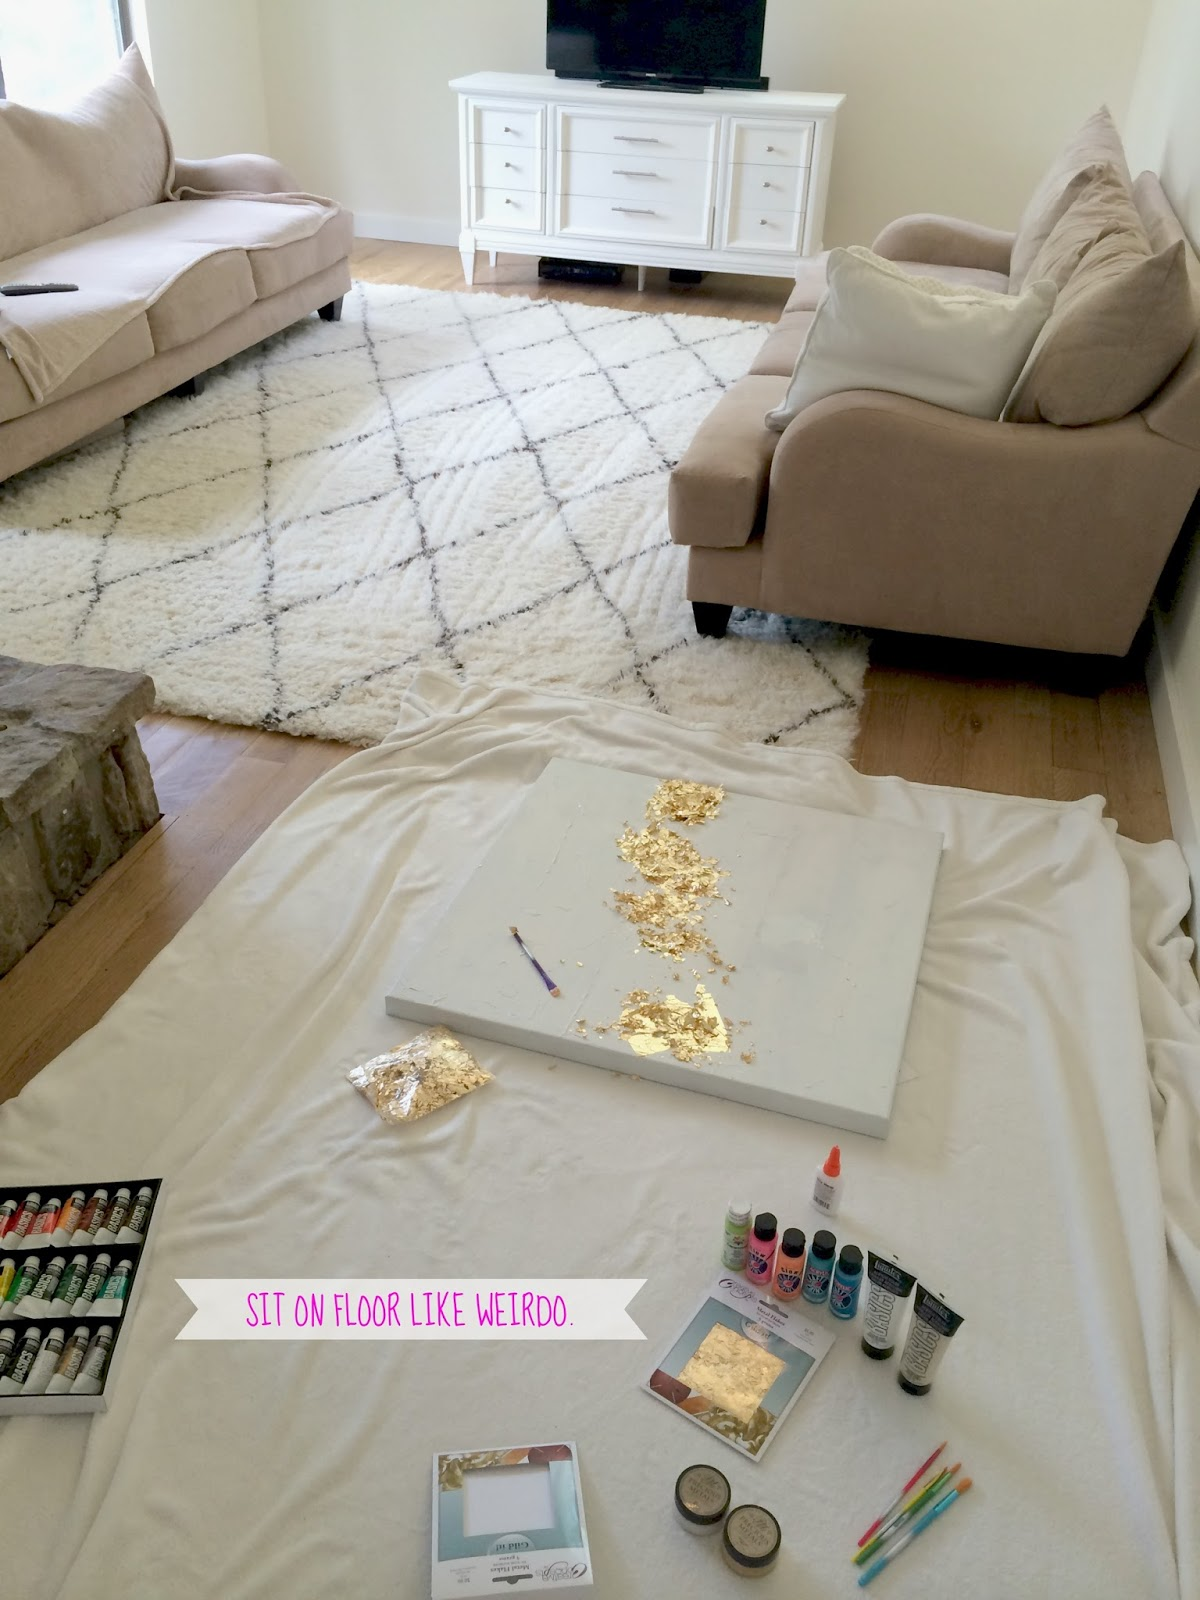 Livelovediy how to make gold leaf art round two next i applied the gold leaf the store was out of gold leaf sheets like i usually use so i had to use gold leaf flakes i wasnt sure how it would gumiabroncs Image collections